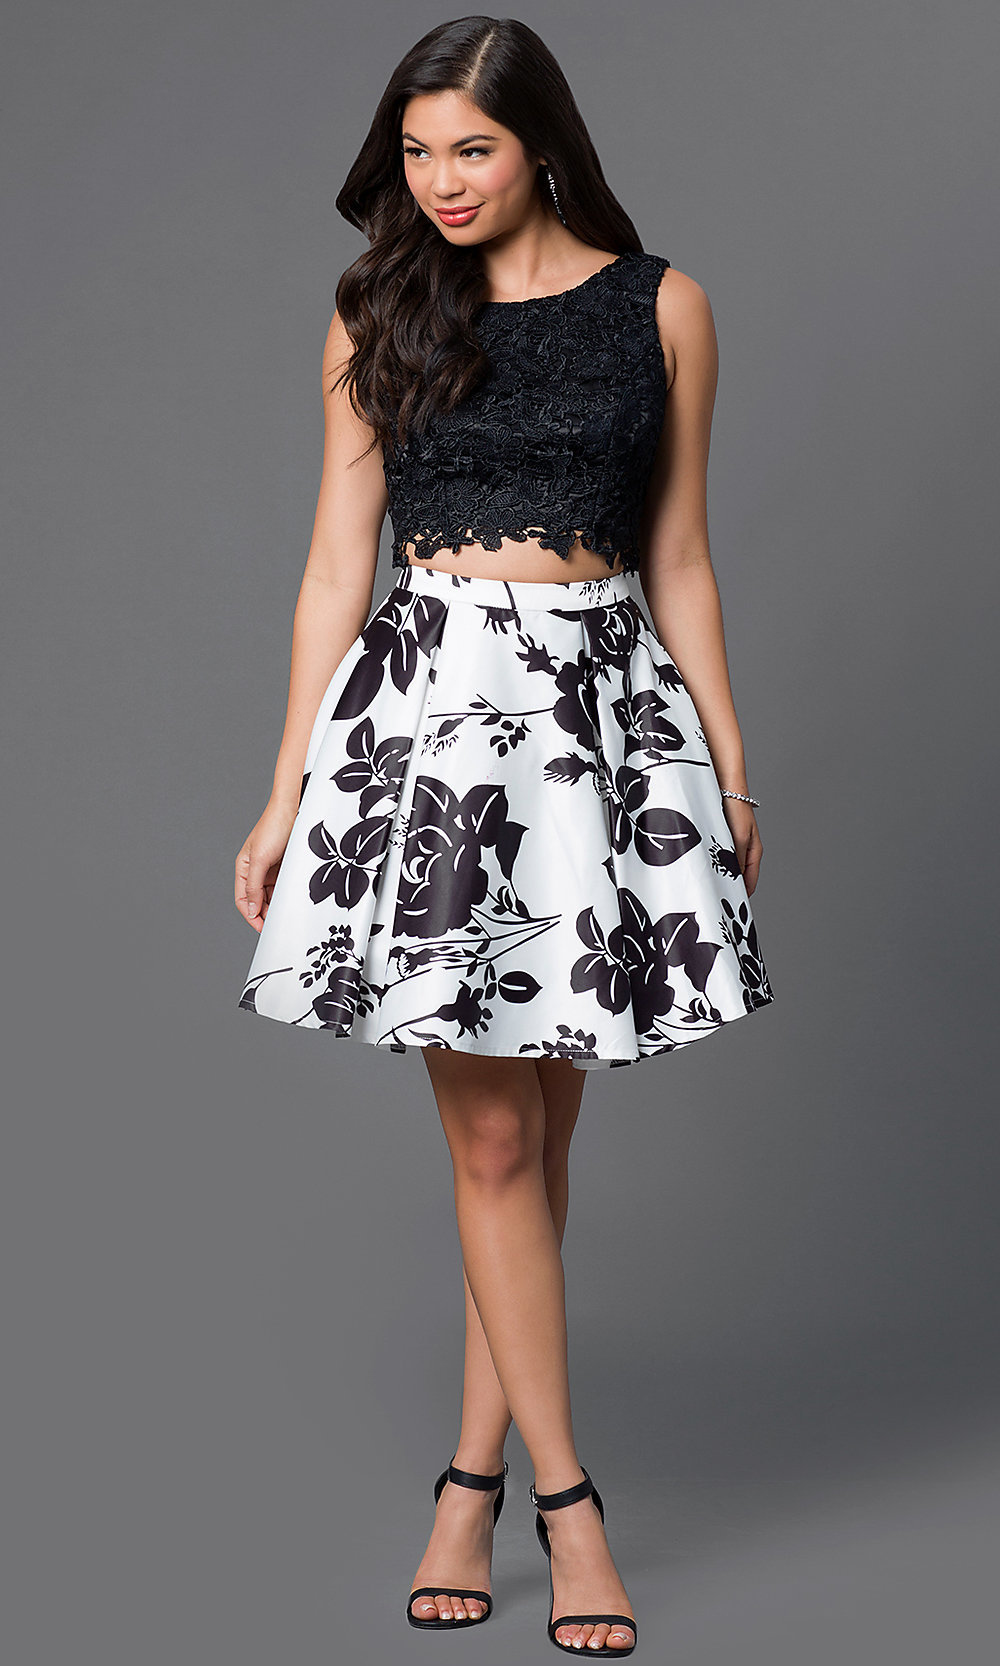 Black-White Two-Piece Homecoming Dress - PromGirl